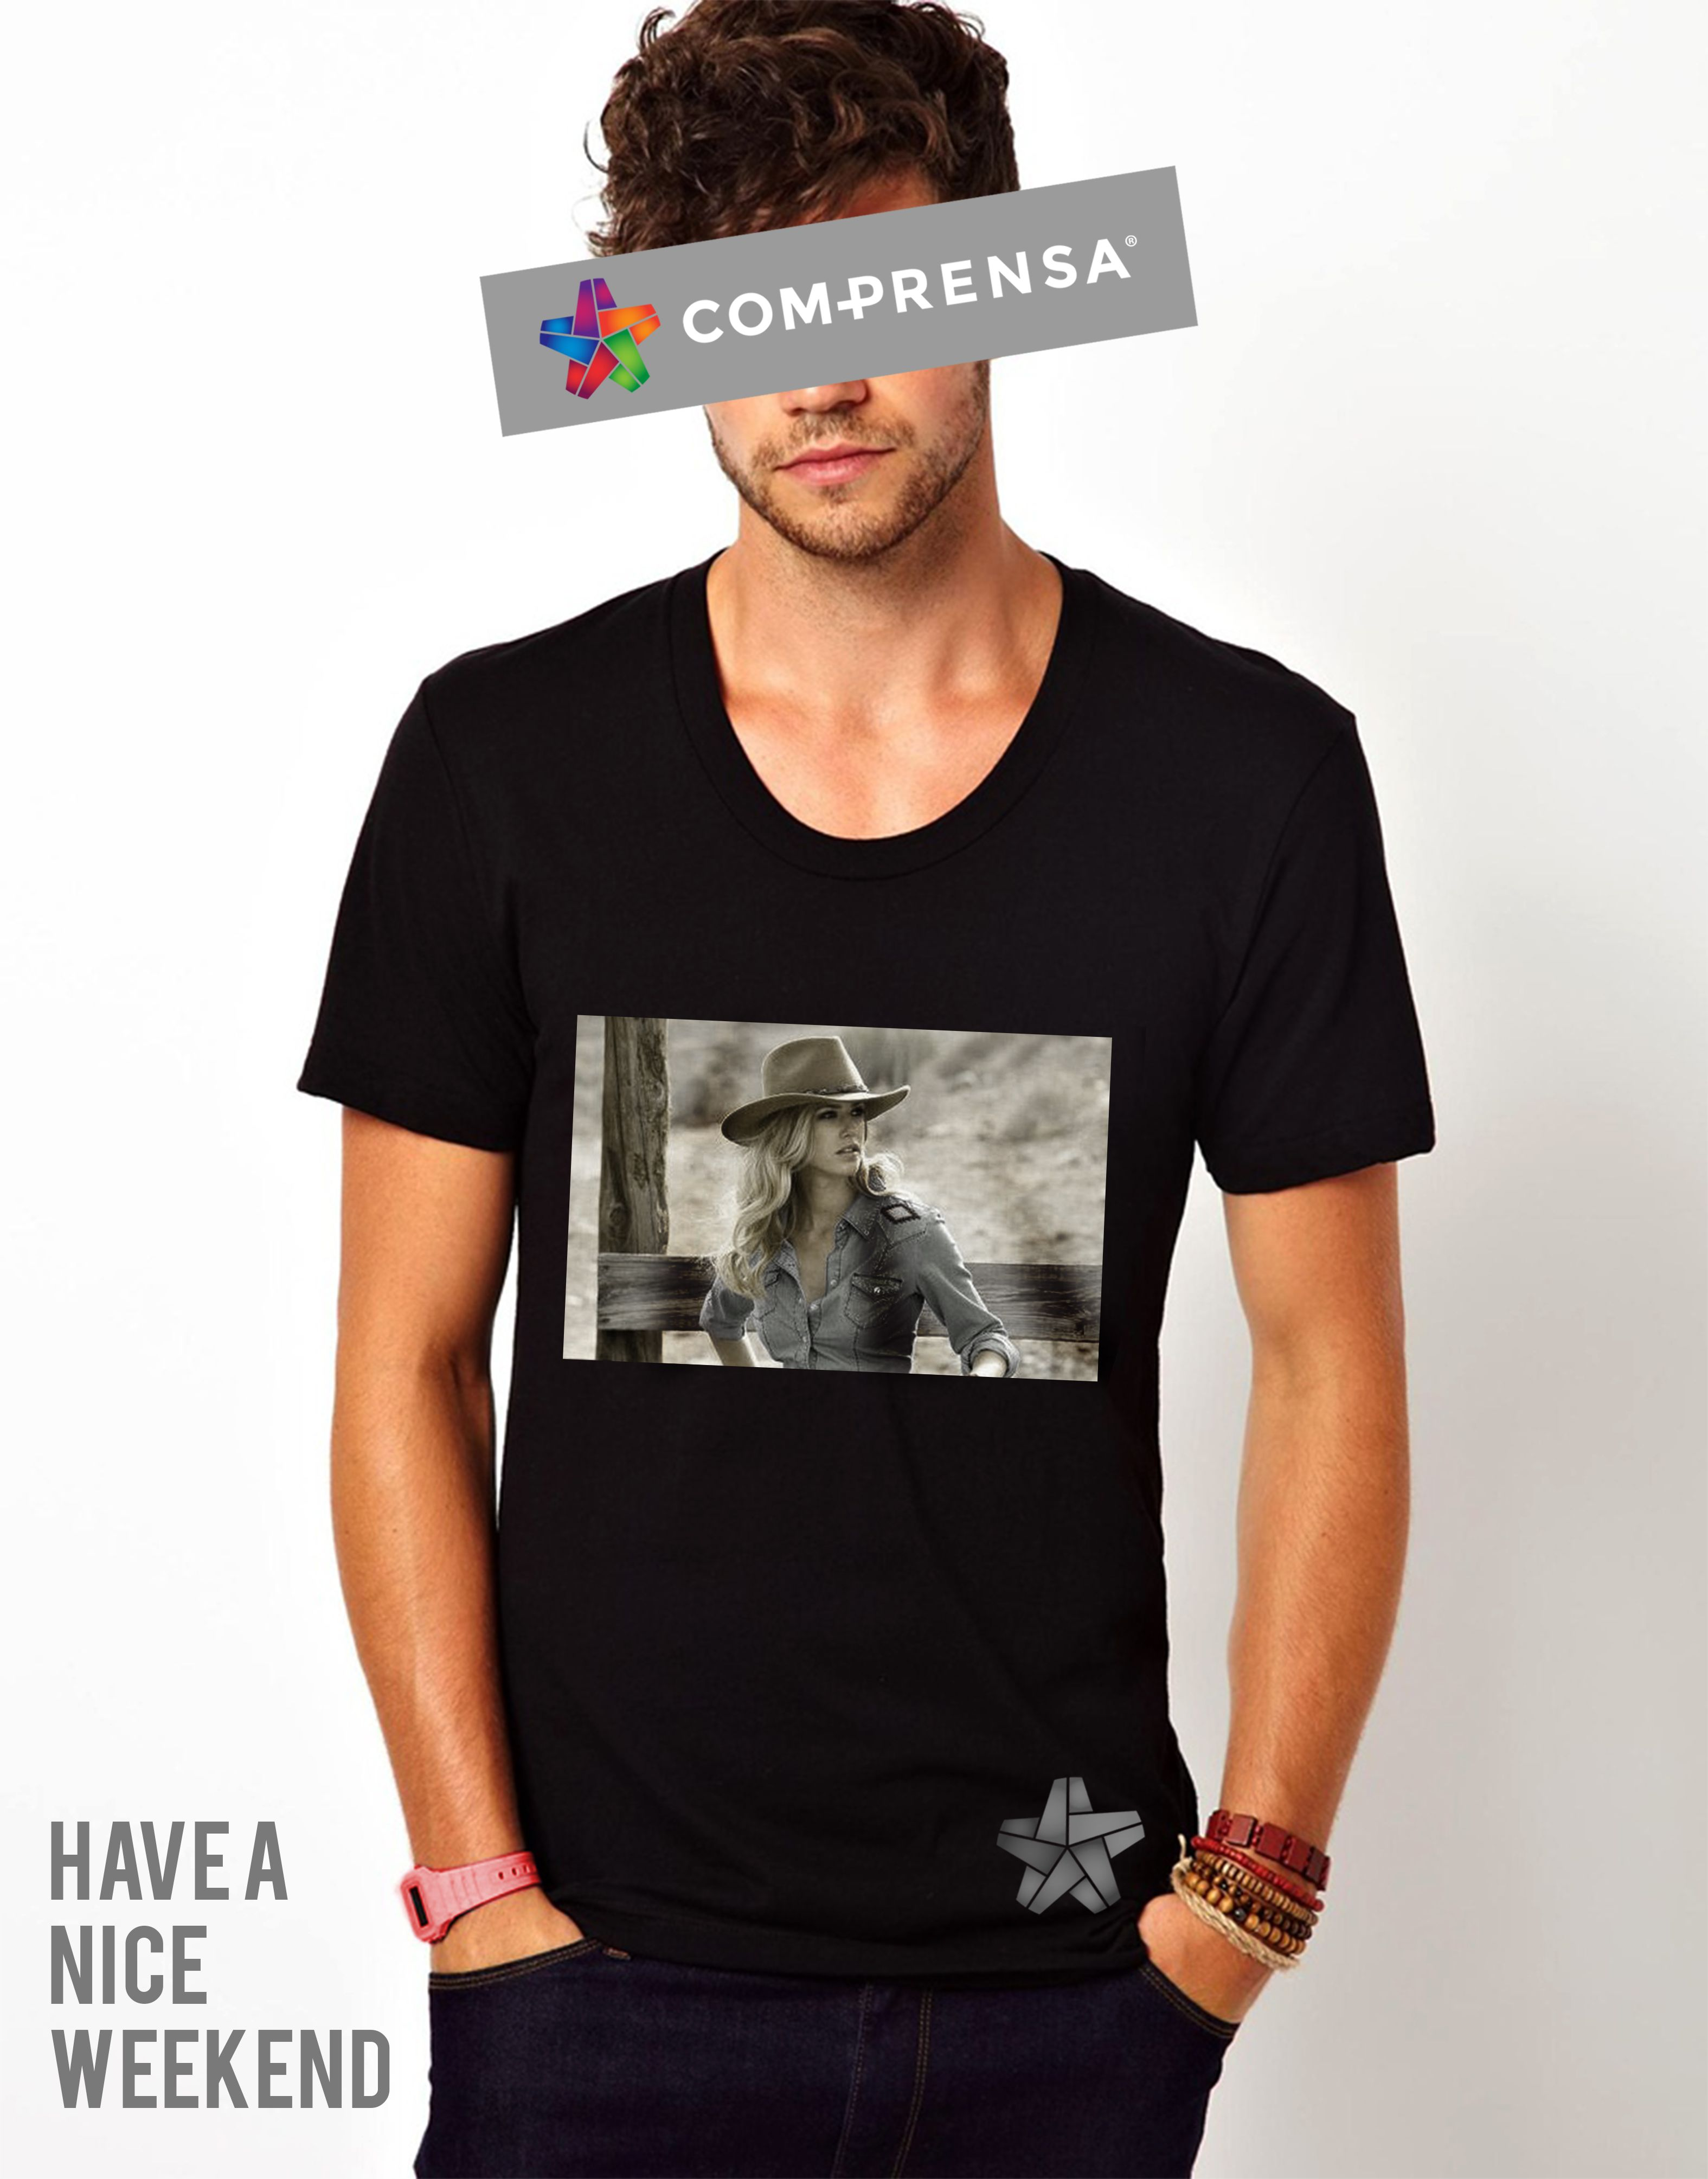 Made from cotton, this black t-shirt has a round neck and short sleeves, with a sépia print at chest depicting a cowgirl.  #comprensa #model #fashion #manufacturer #design #company #textile #portugal #jersey #fleece #cotton #bio #sublimation #screenprinting #digitalprint #laser #photoprint